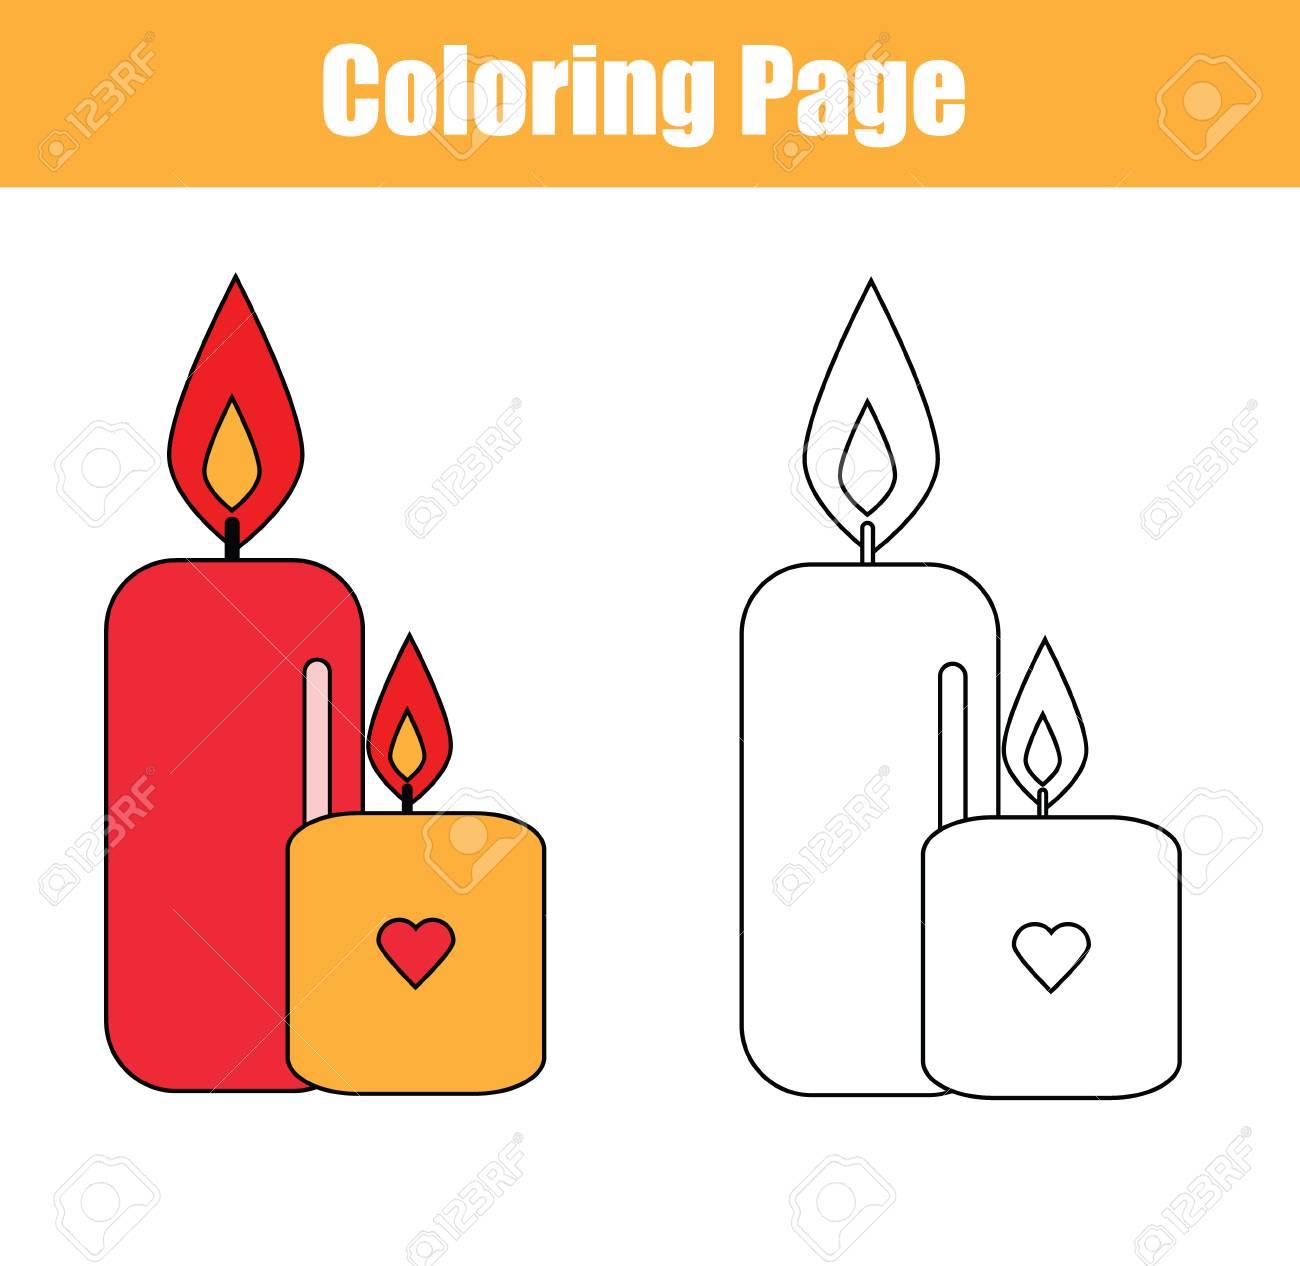 image relating to Printable Candles named Coloring site with candles. Reproduction colours coloring reserve for little ones